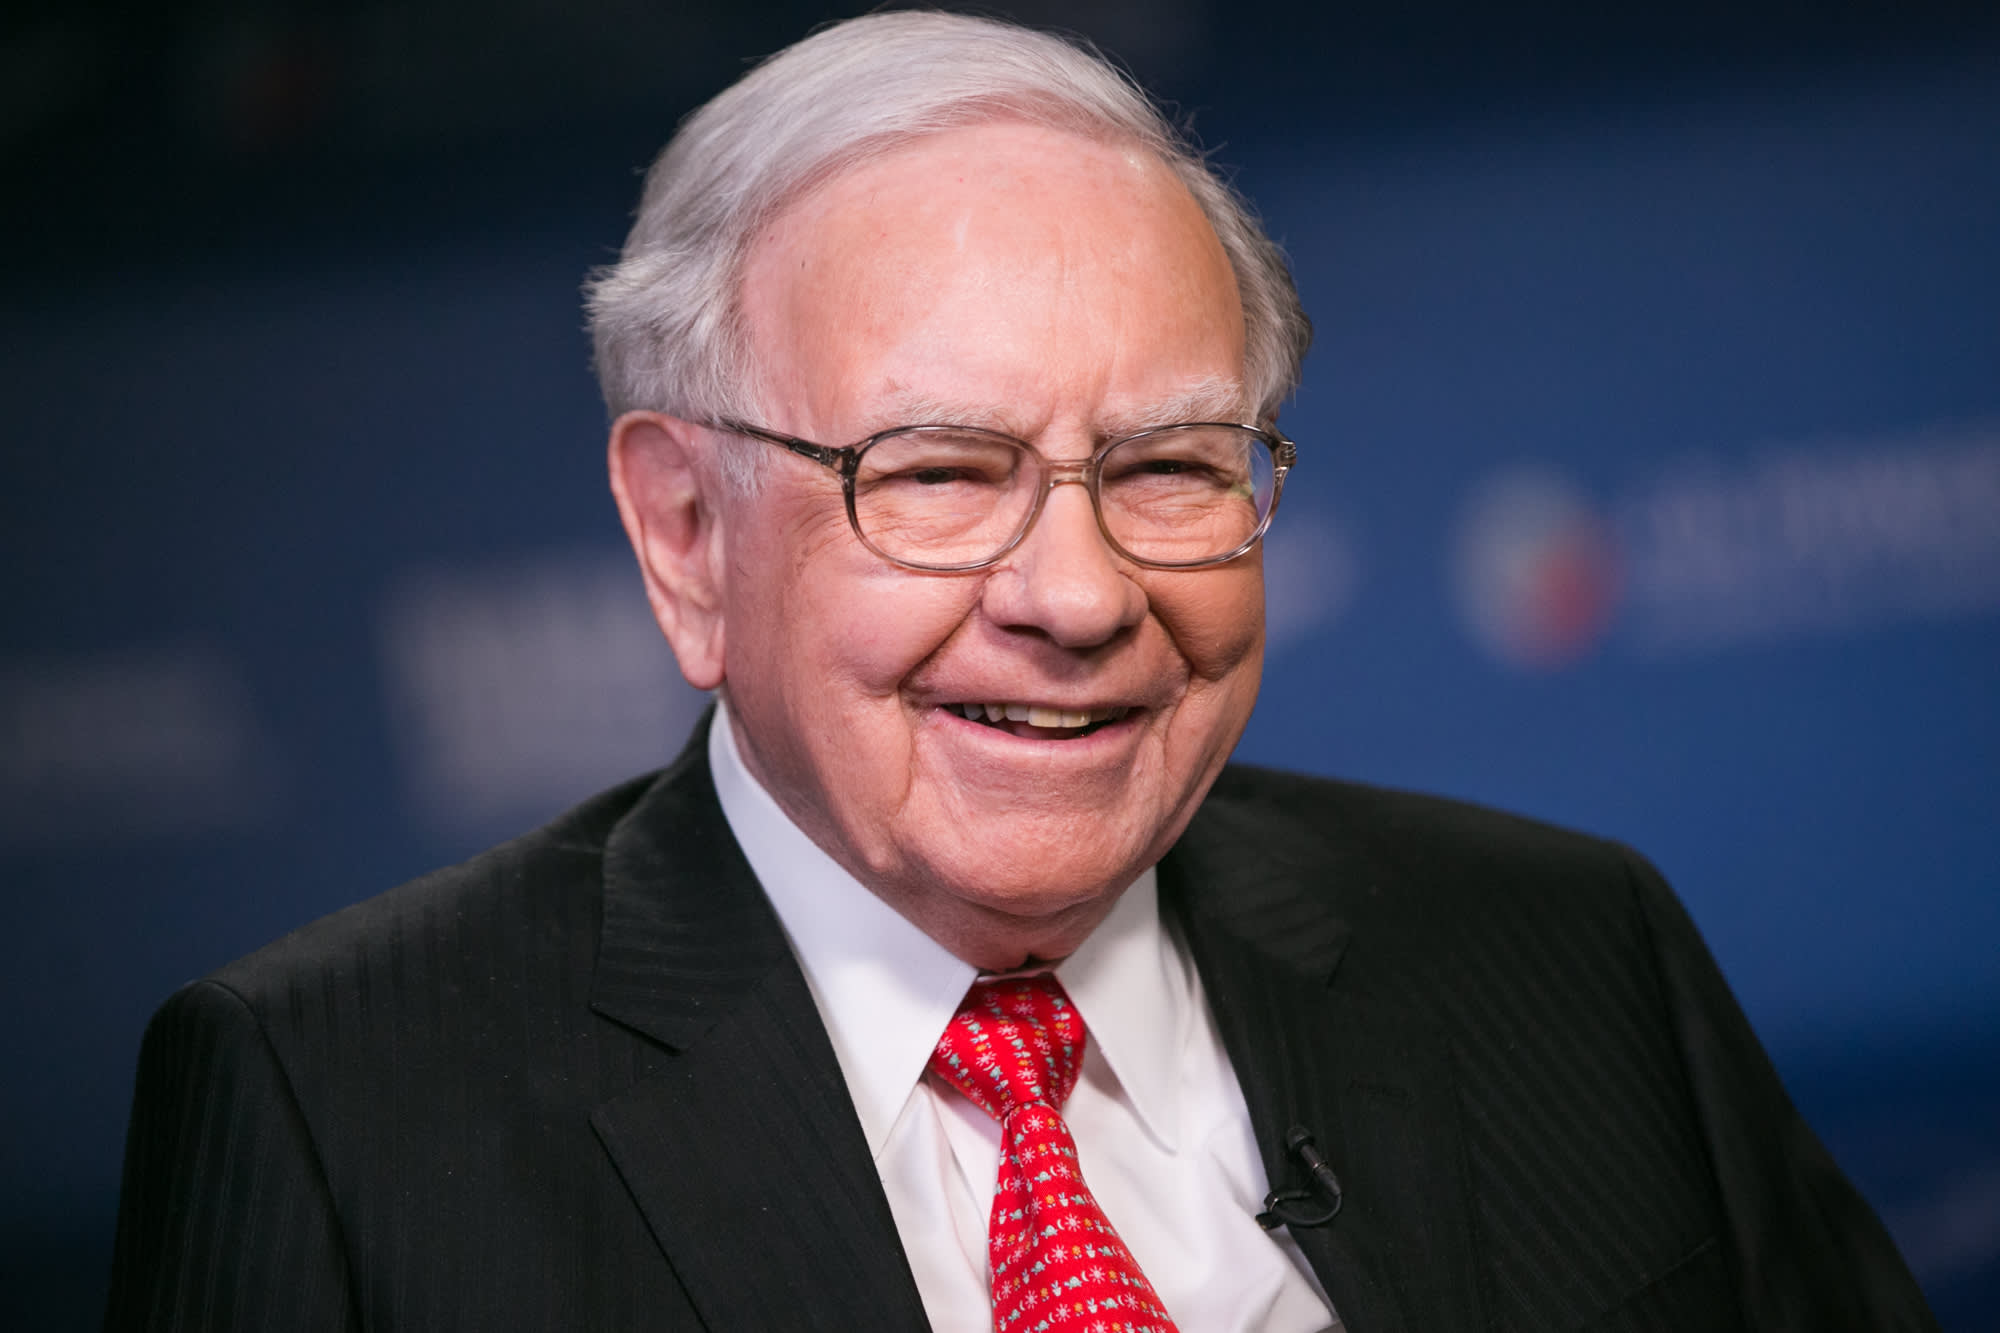 Before Warren Buffett made his fortune, he took a job without asking what the salary was—here's why